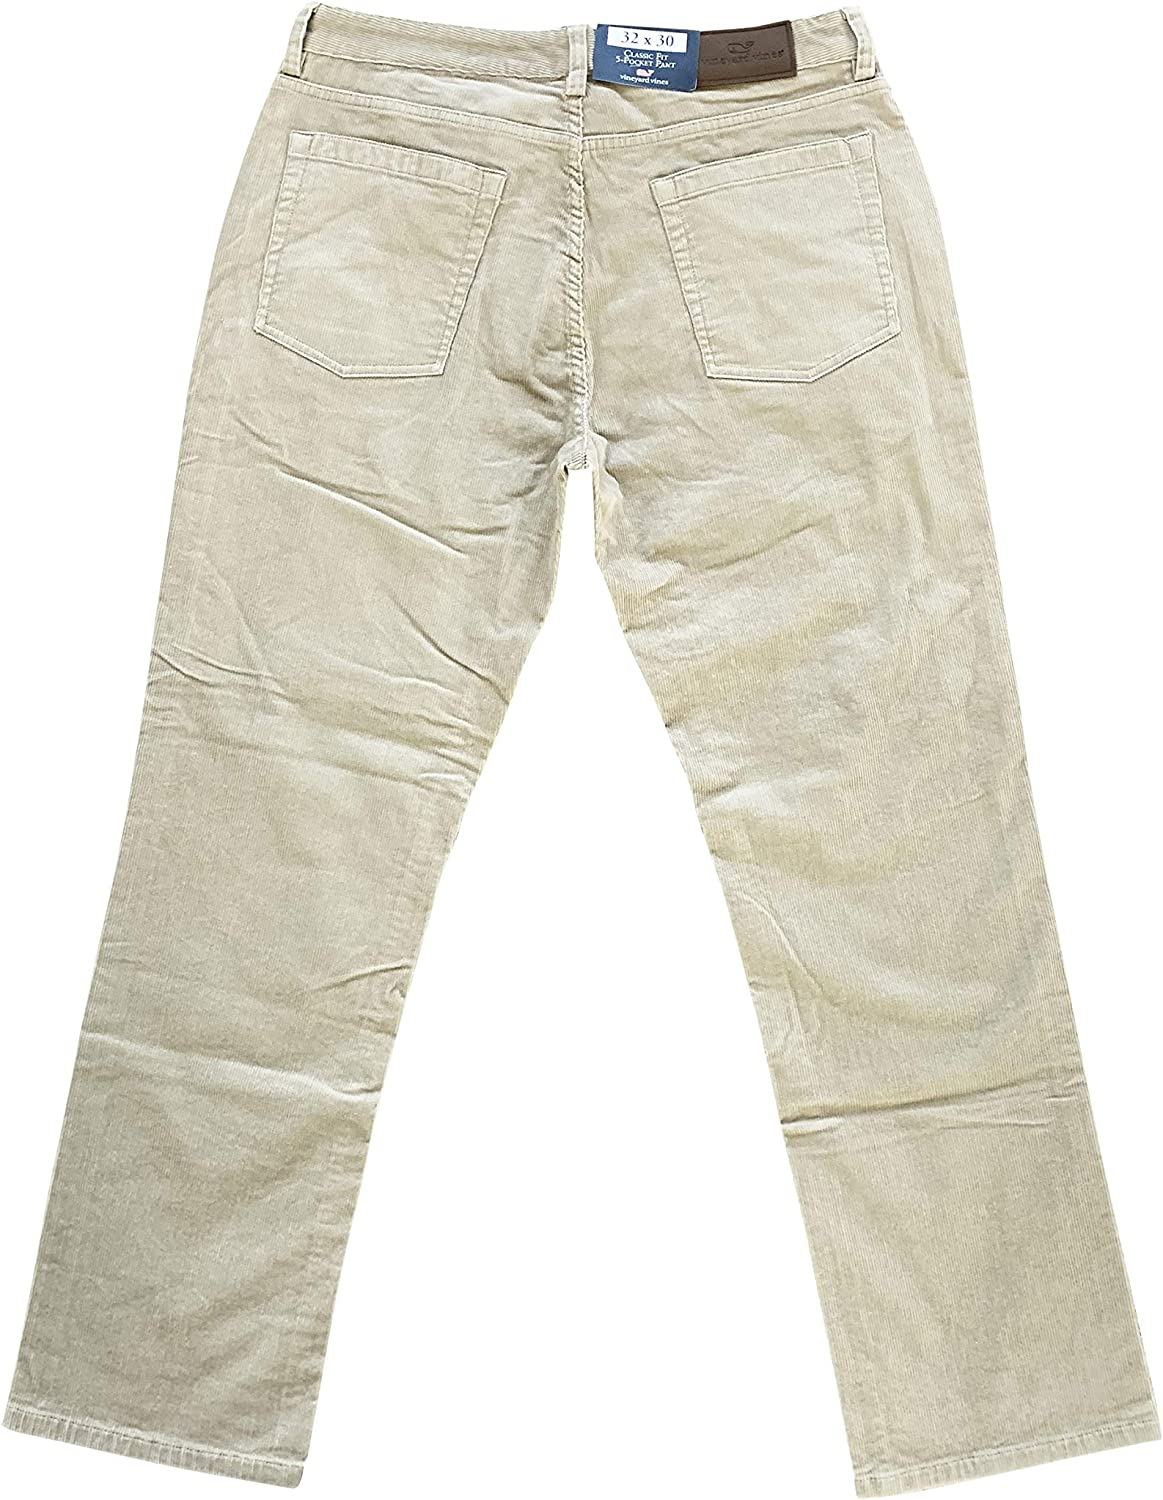 Vineyard Vines Mens Pants Classic Fit Five Pocket Stretch Cords Pant